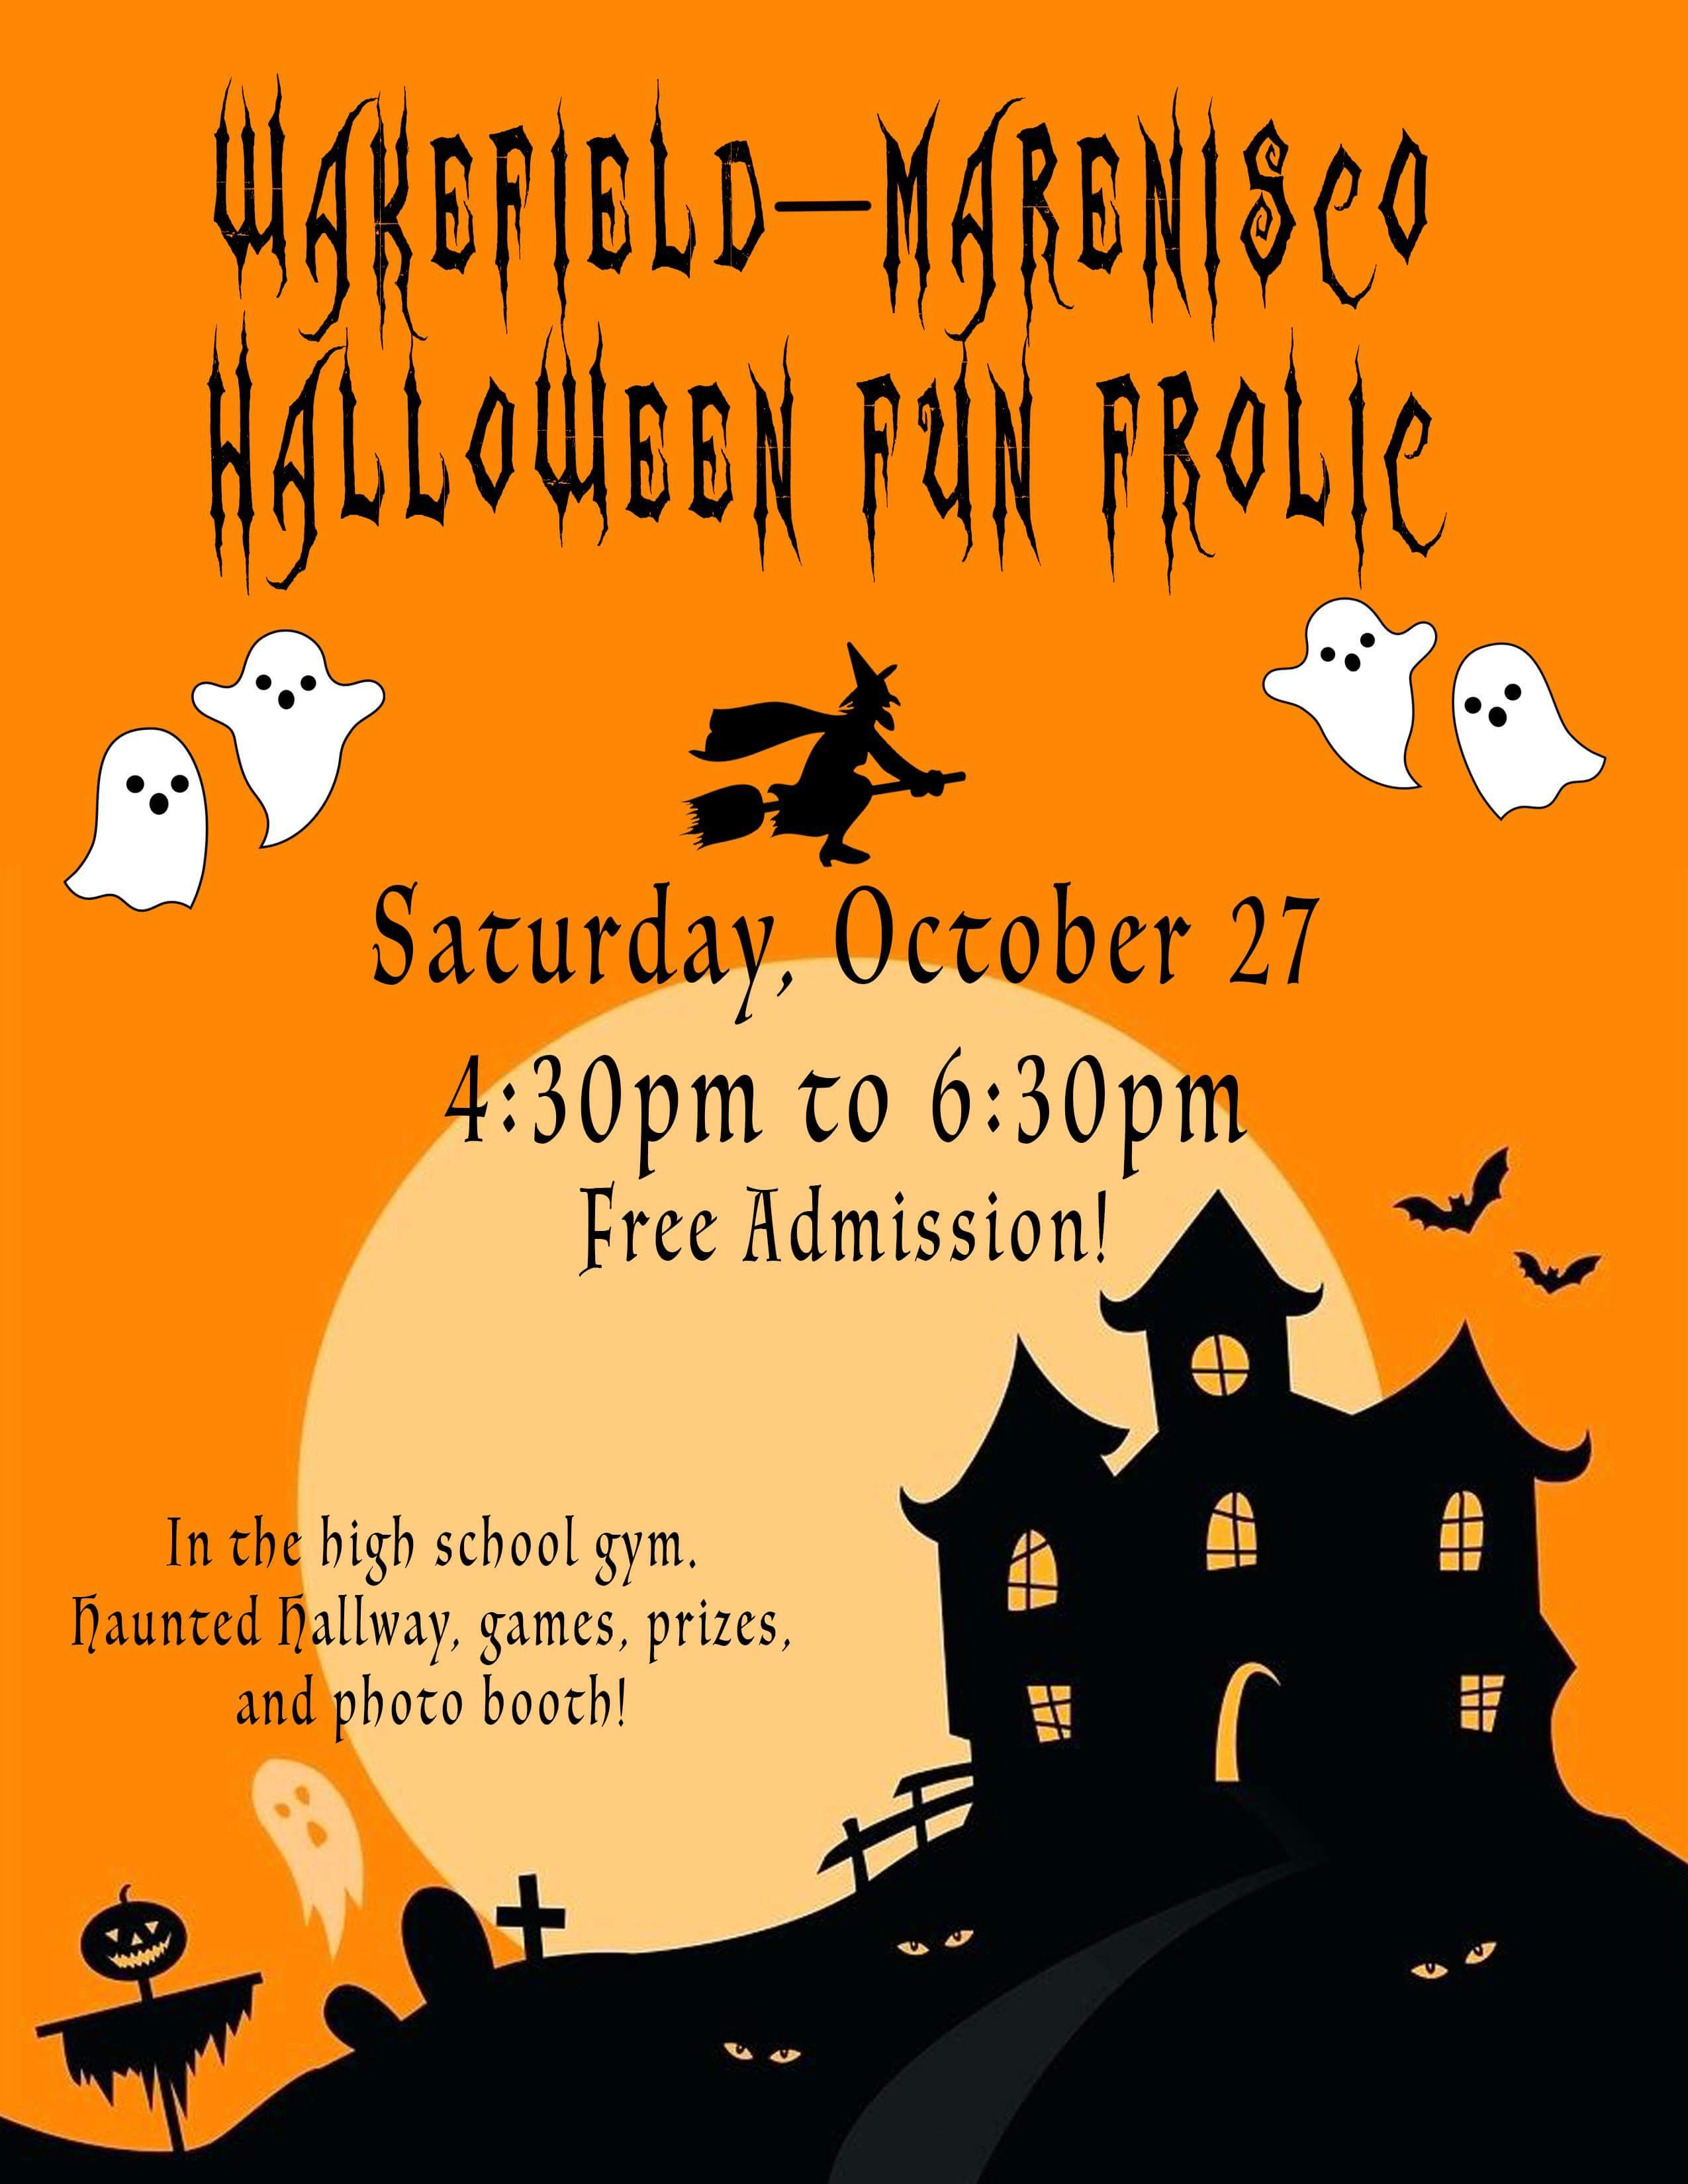 Wakefield-Marenisco Halloween Fun Frolic, on October 27th from 4:30 to 6:30. Free admission, in the high school gym. There's a haunted hallway, games prizes, and photo booth